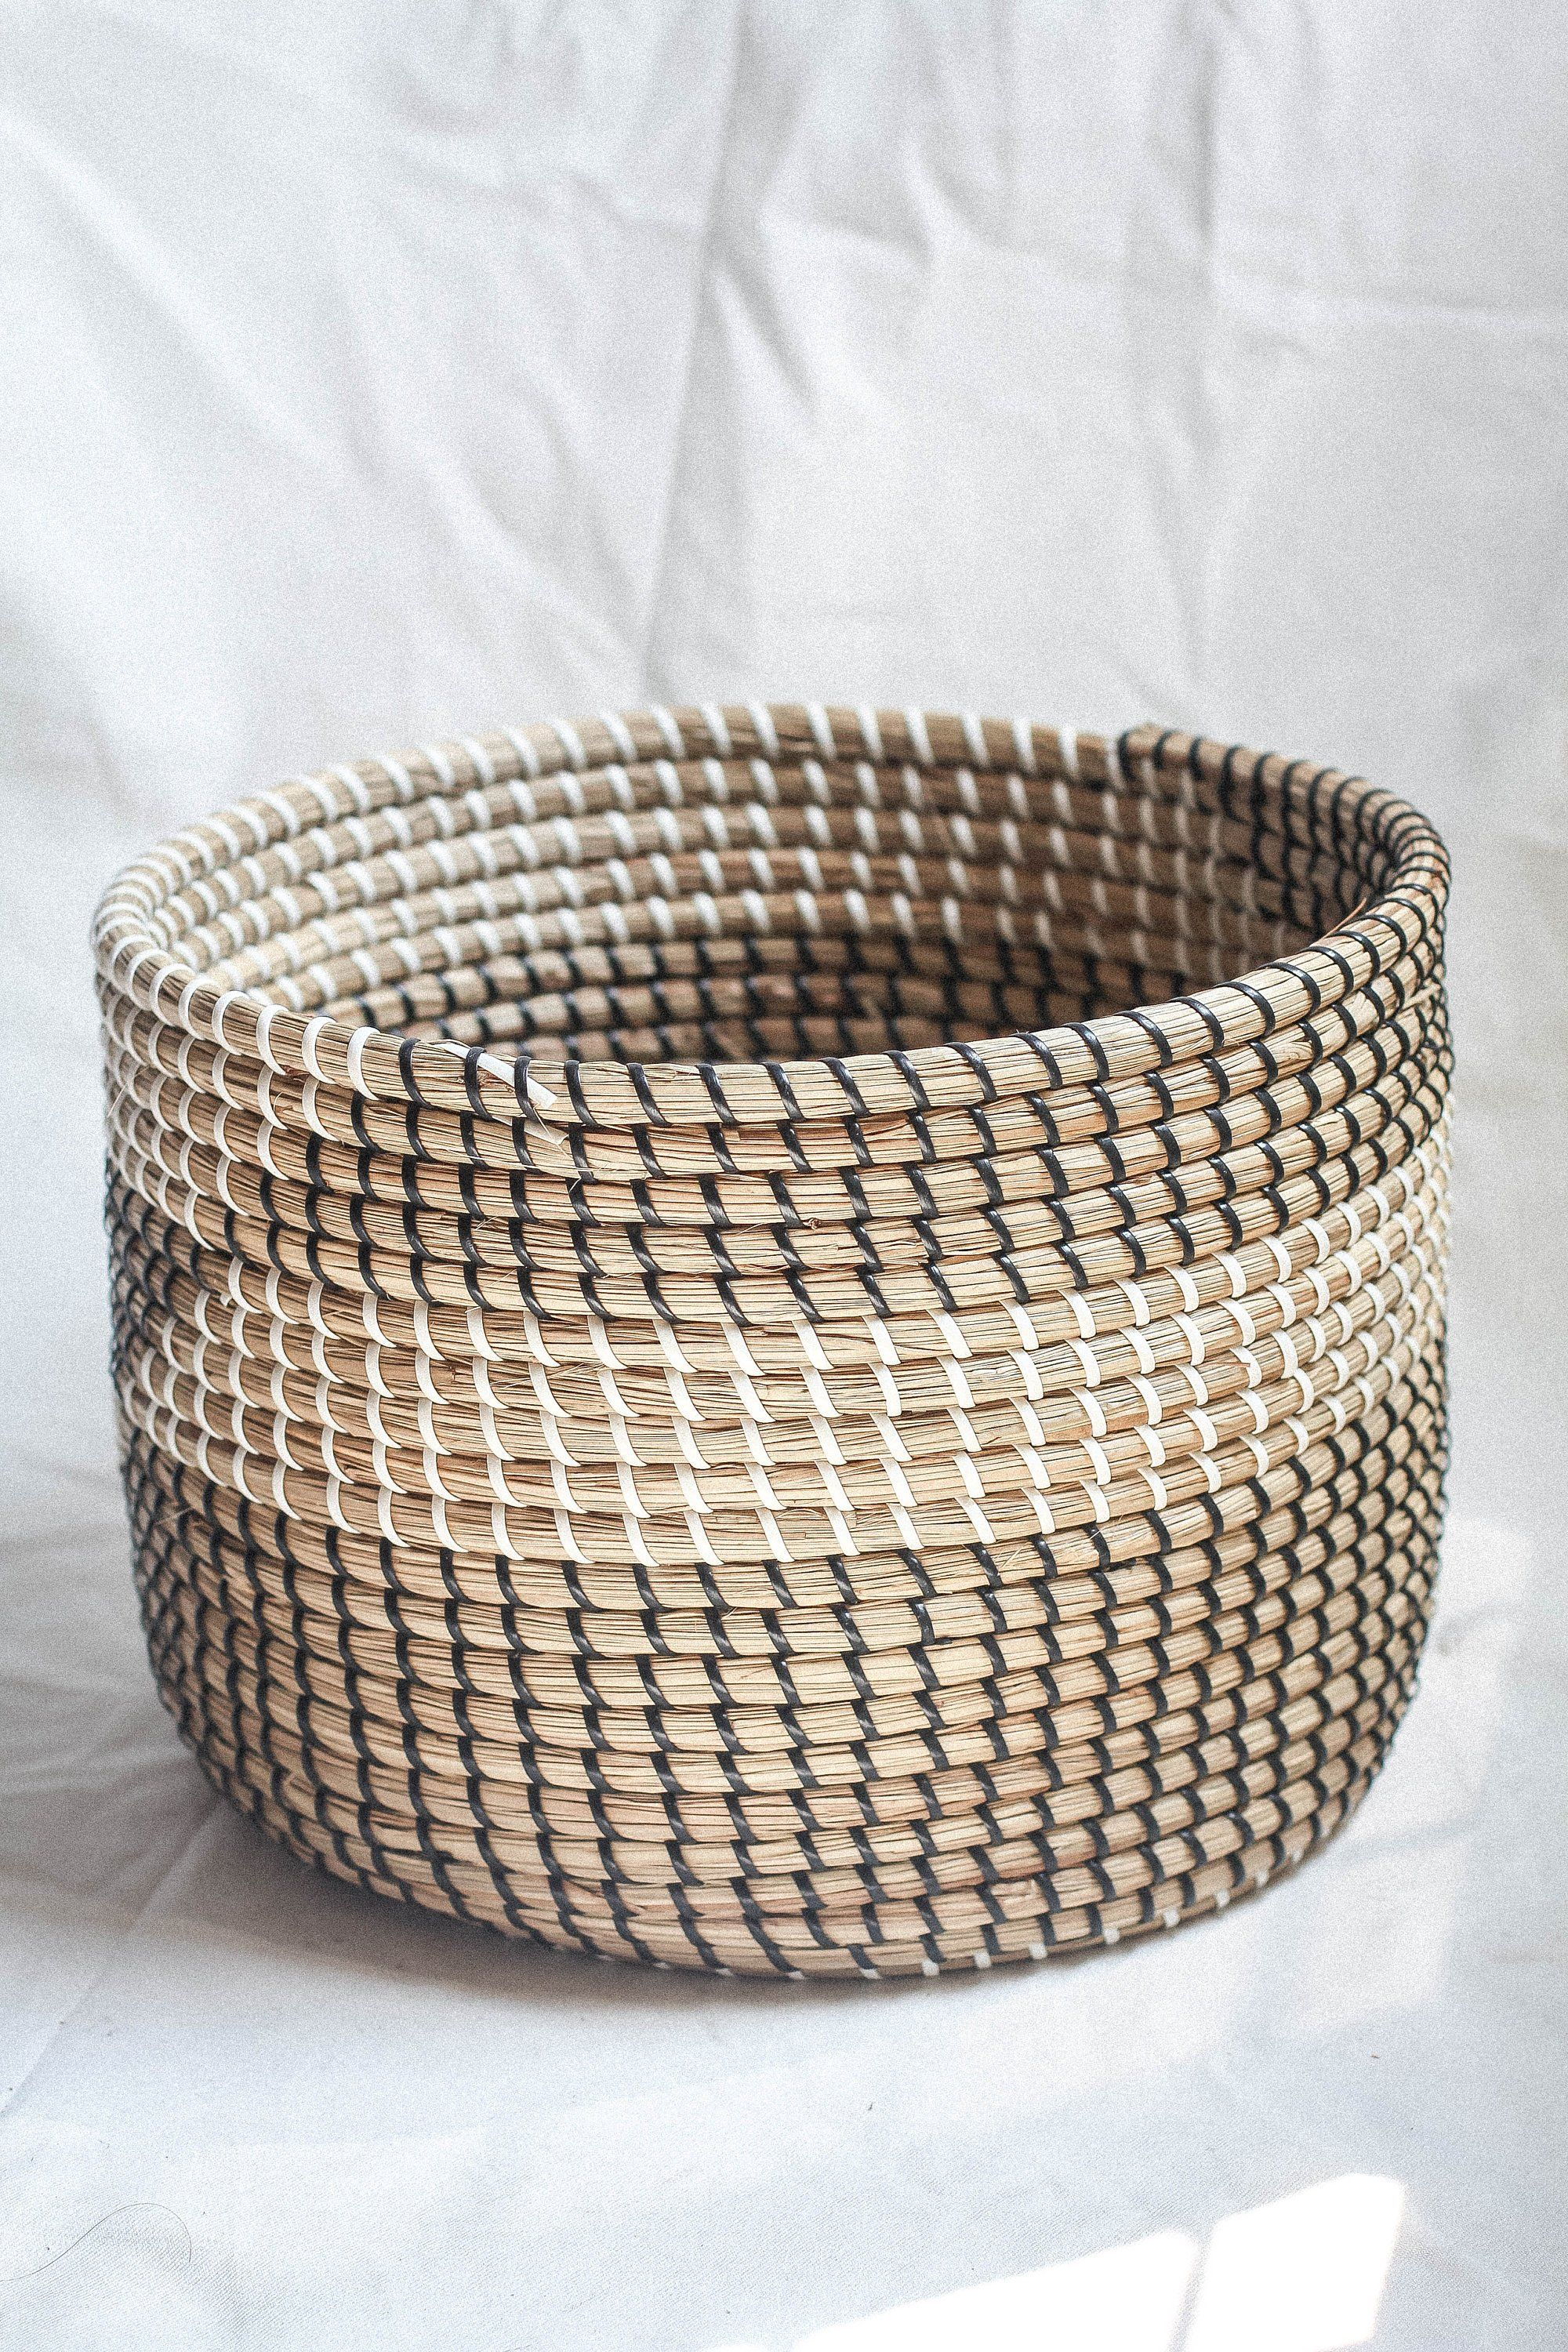 Handwoven Big Laundry Basket Handmade Natural Weave Seagrass Wicker Basket Handicraft Vietnam Vintage Storage Woven Decor Holder Laundry Woven Decor Wicker Baskets Storage Natural Weave